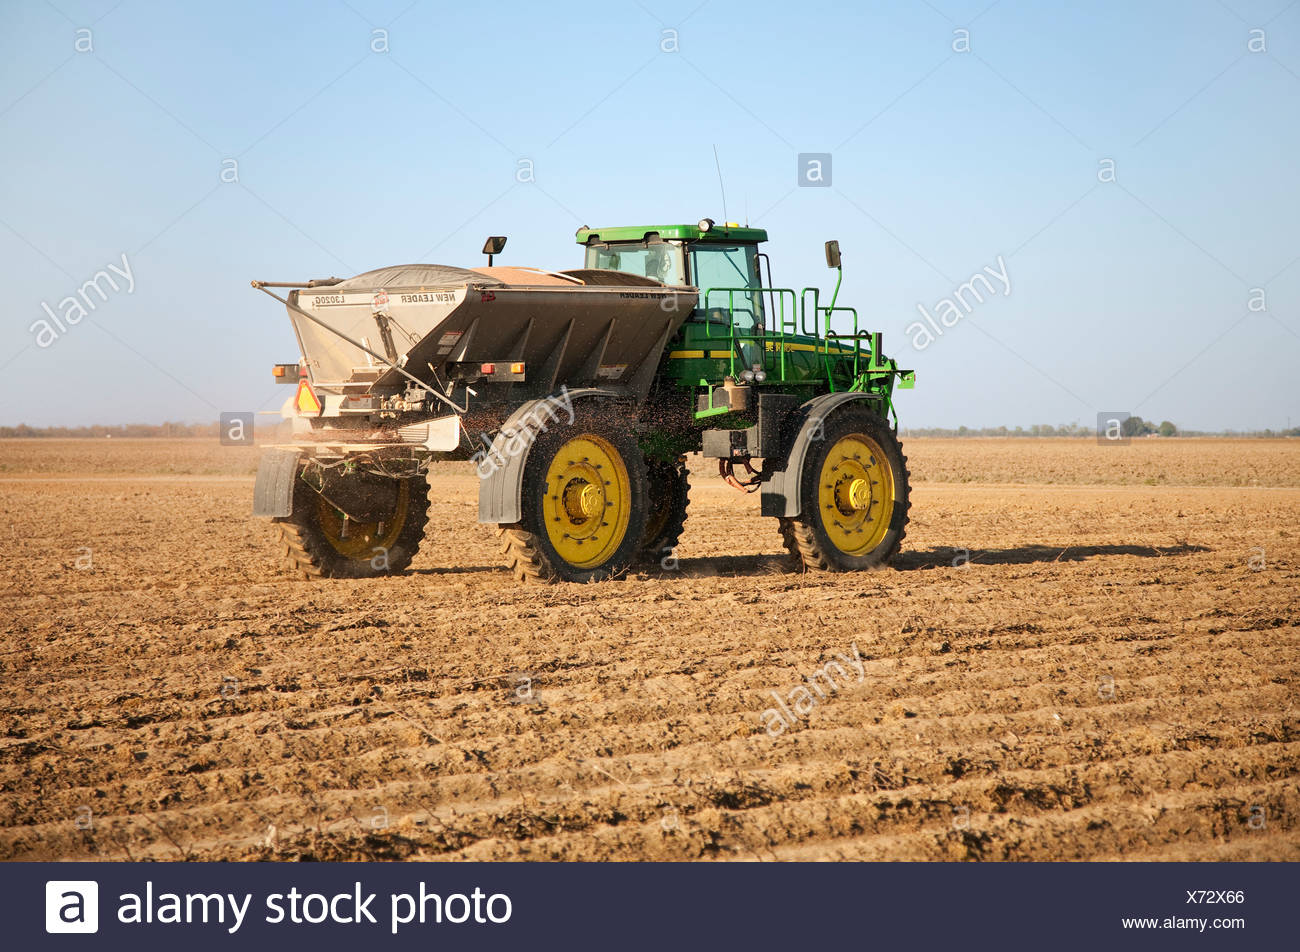 A John Deere 4920 with a New Leader spreader applies dry fertilizer containing Phosphorus and Potassium to a bedded field. - Stock Image